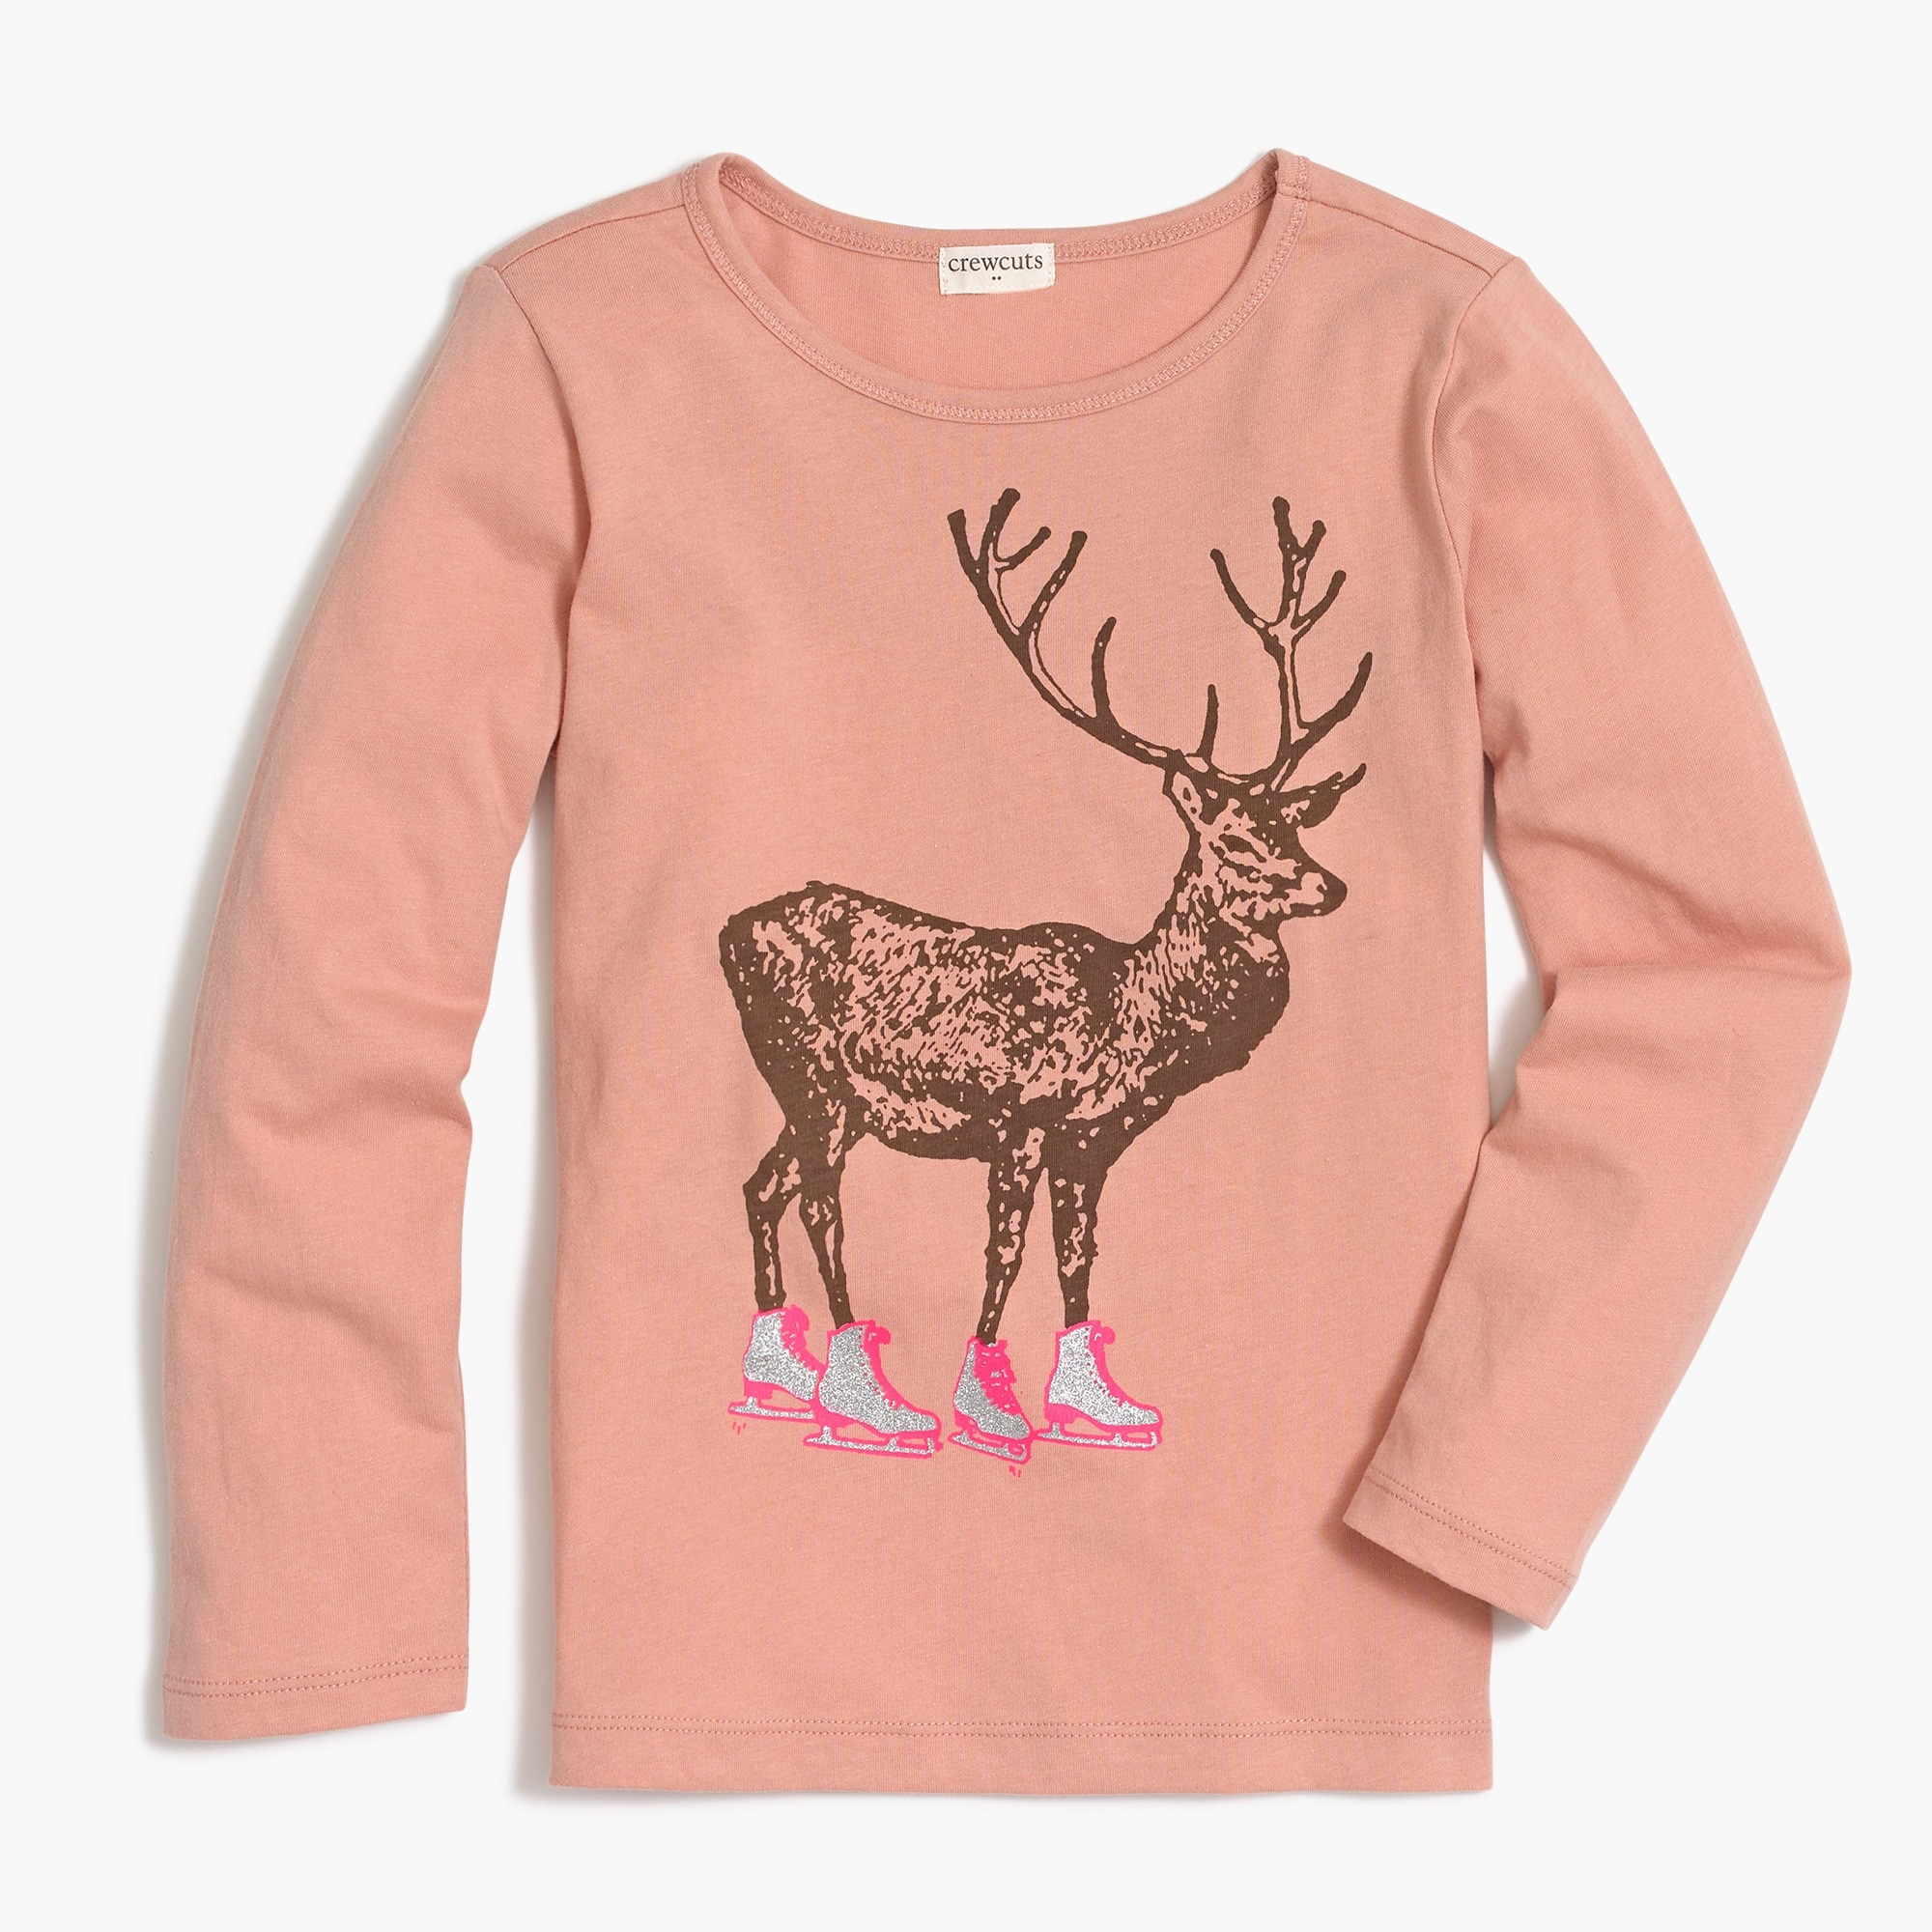 Image 1 for Girls' long-sleeve ice-skating deer graphic T-shirt